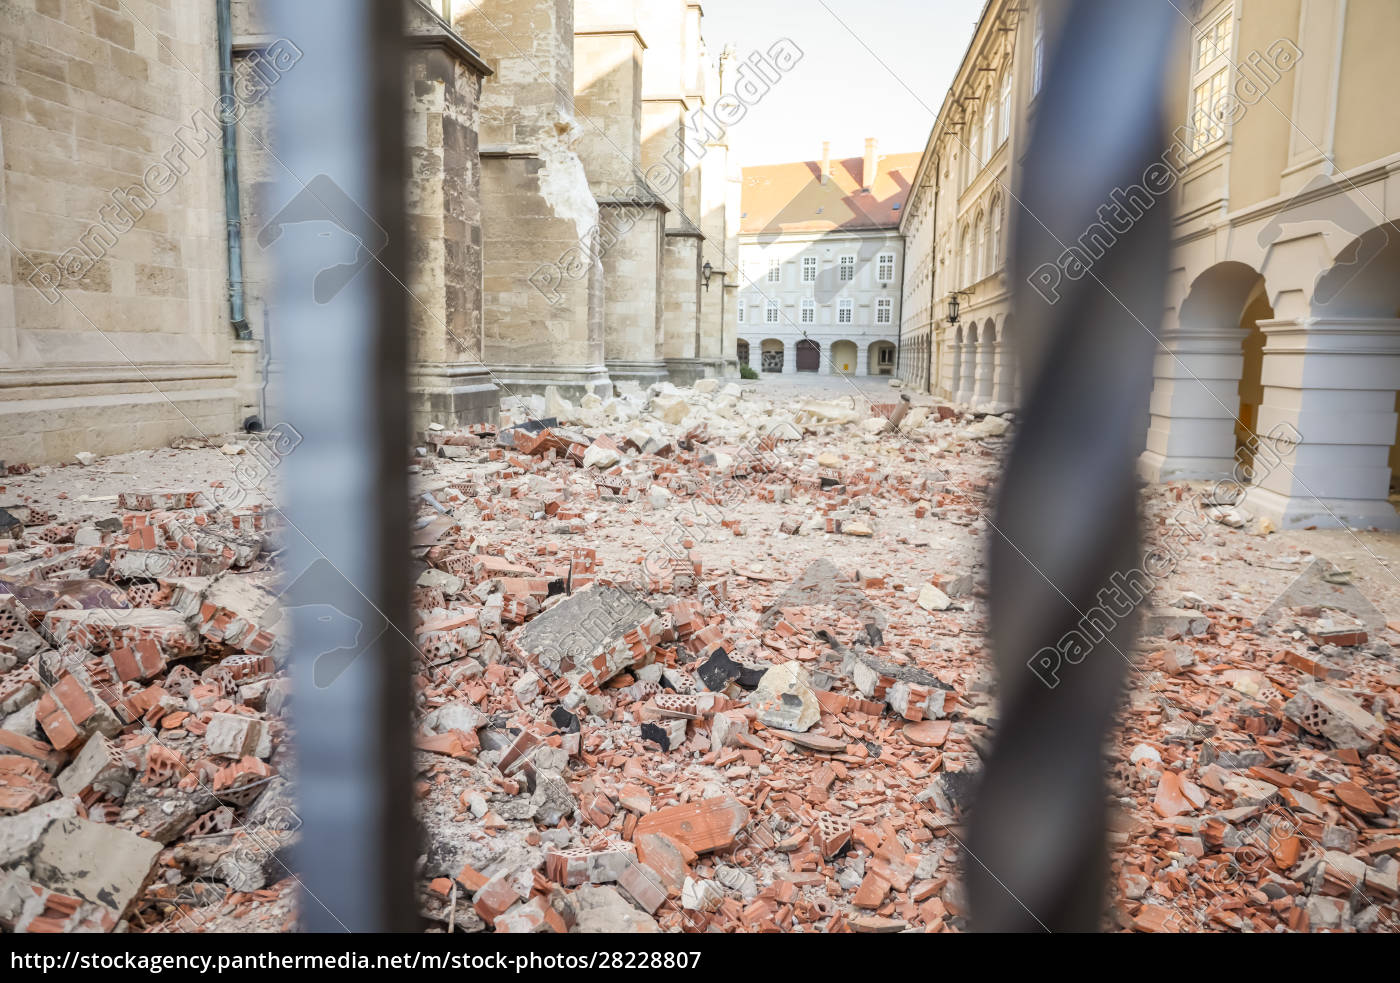 zagreb, hit, by, the, earthquake, damaged - 28228807